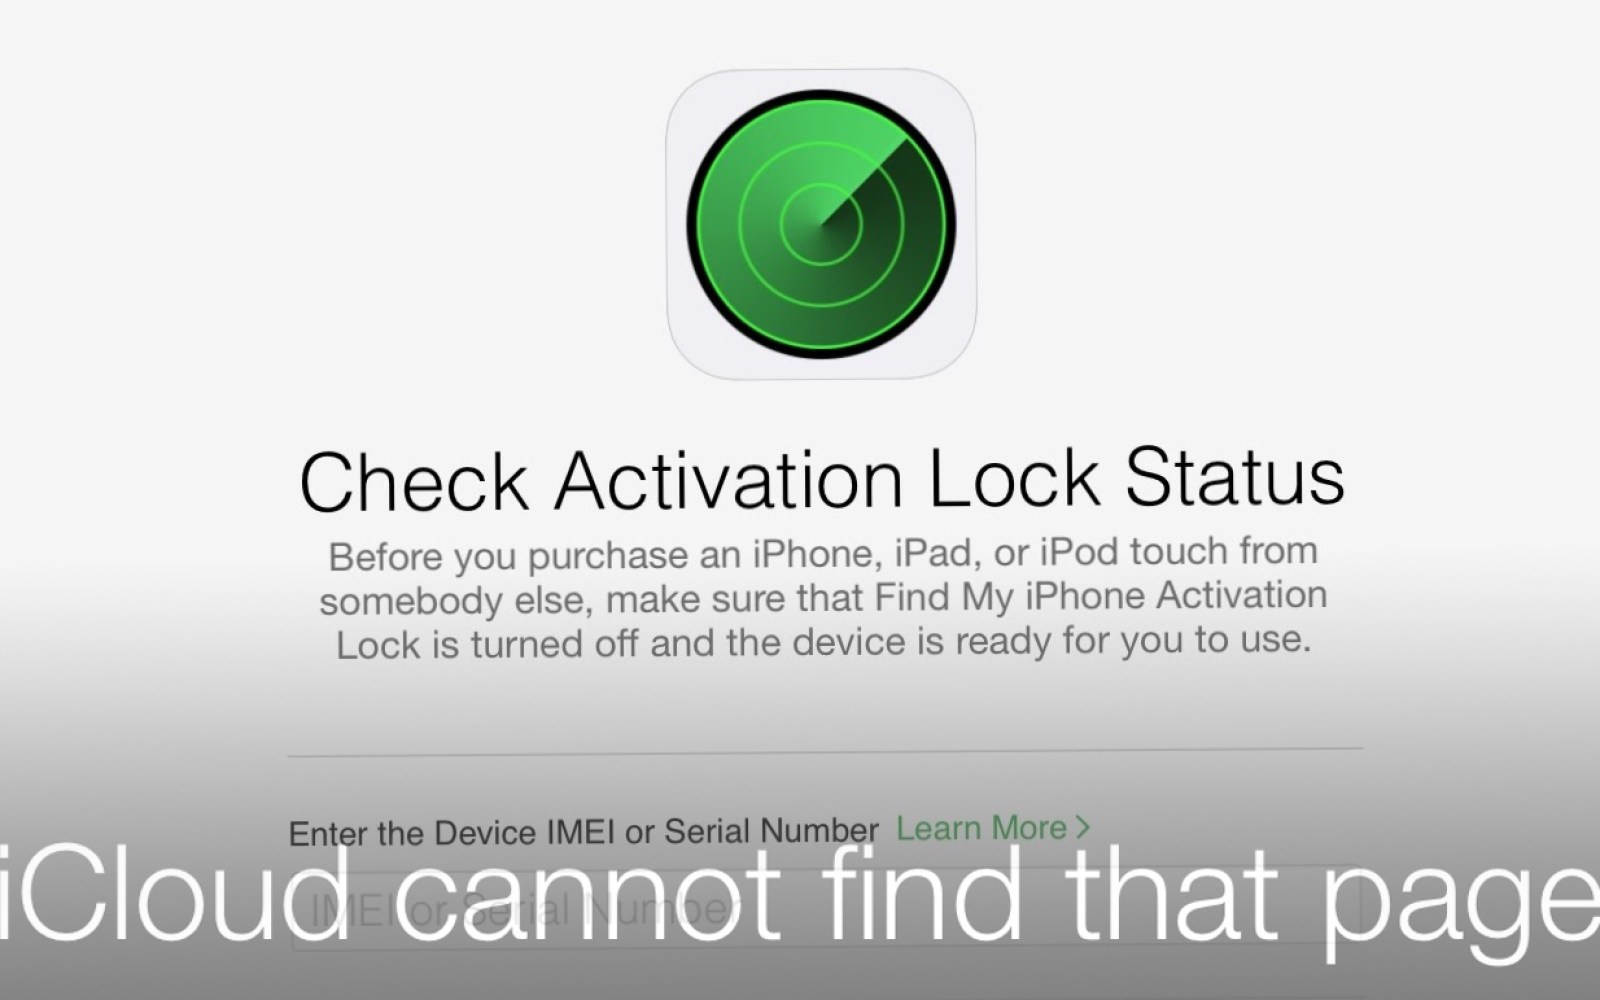 Apple inexplicably removes iCloud Activation Lock status page, which helped people avoid buying stolen iPhones